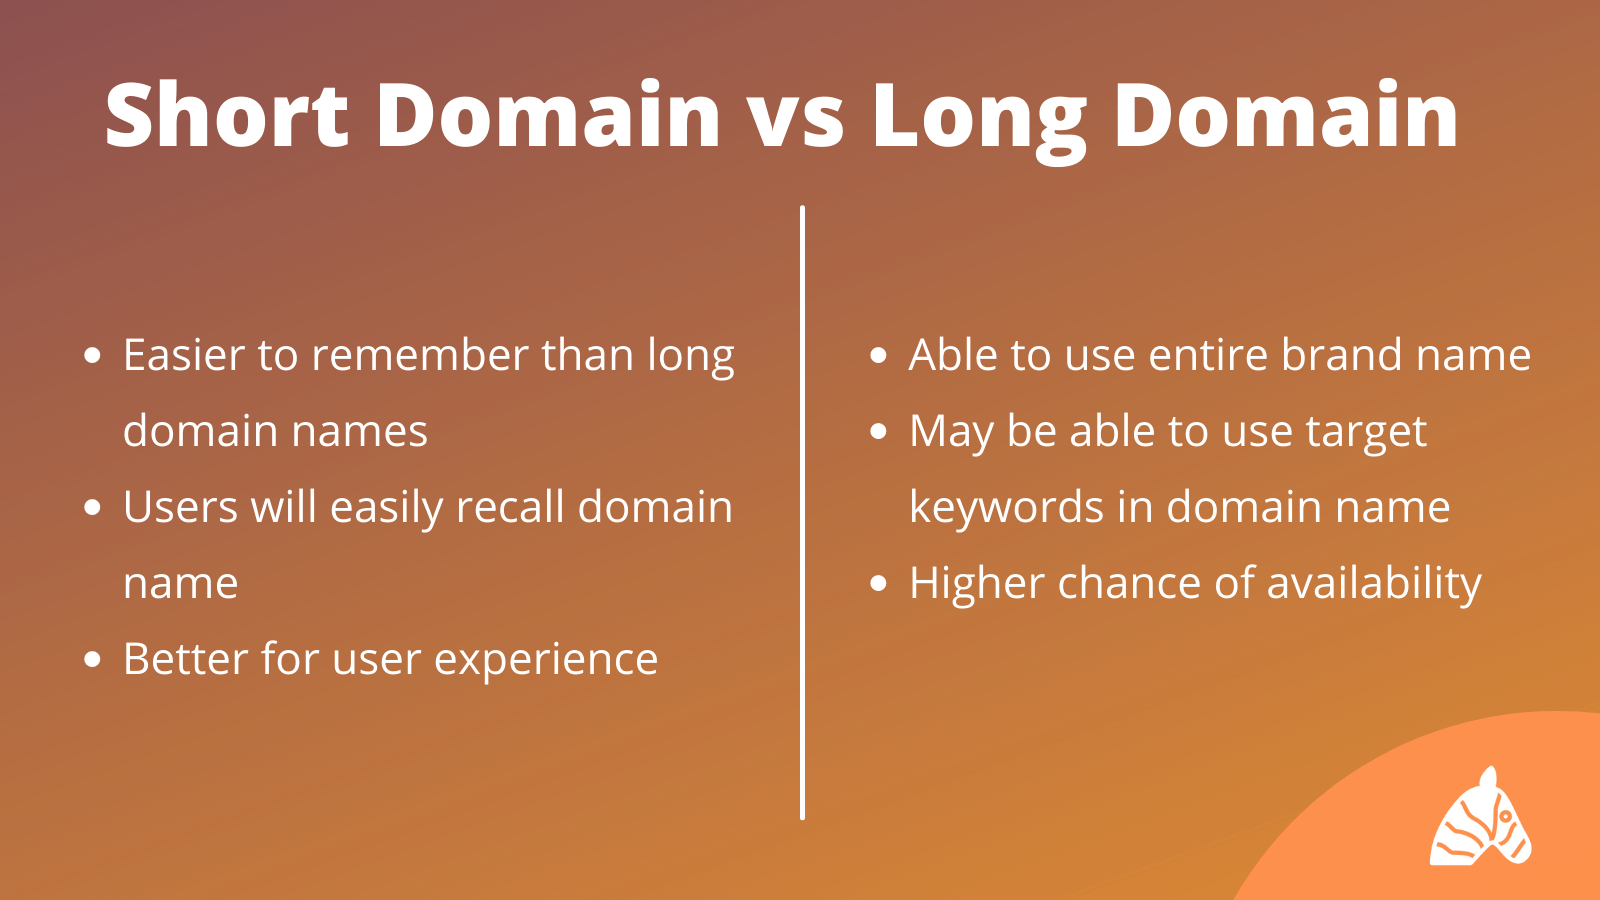 Long Domain Names vs Short Domain Names Infographic